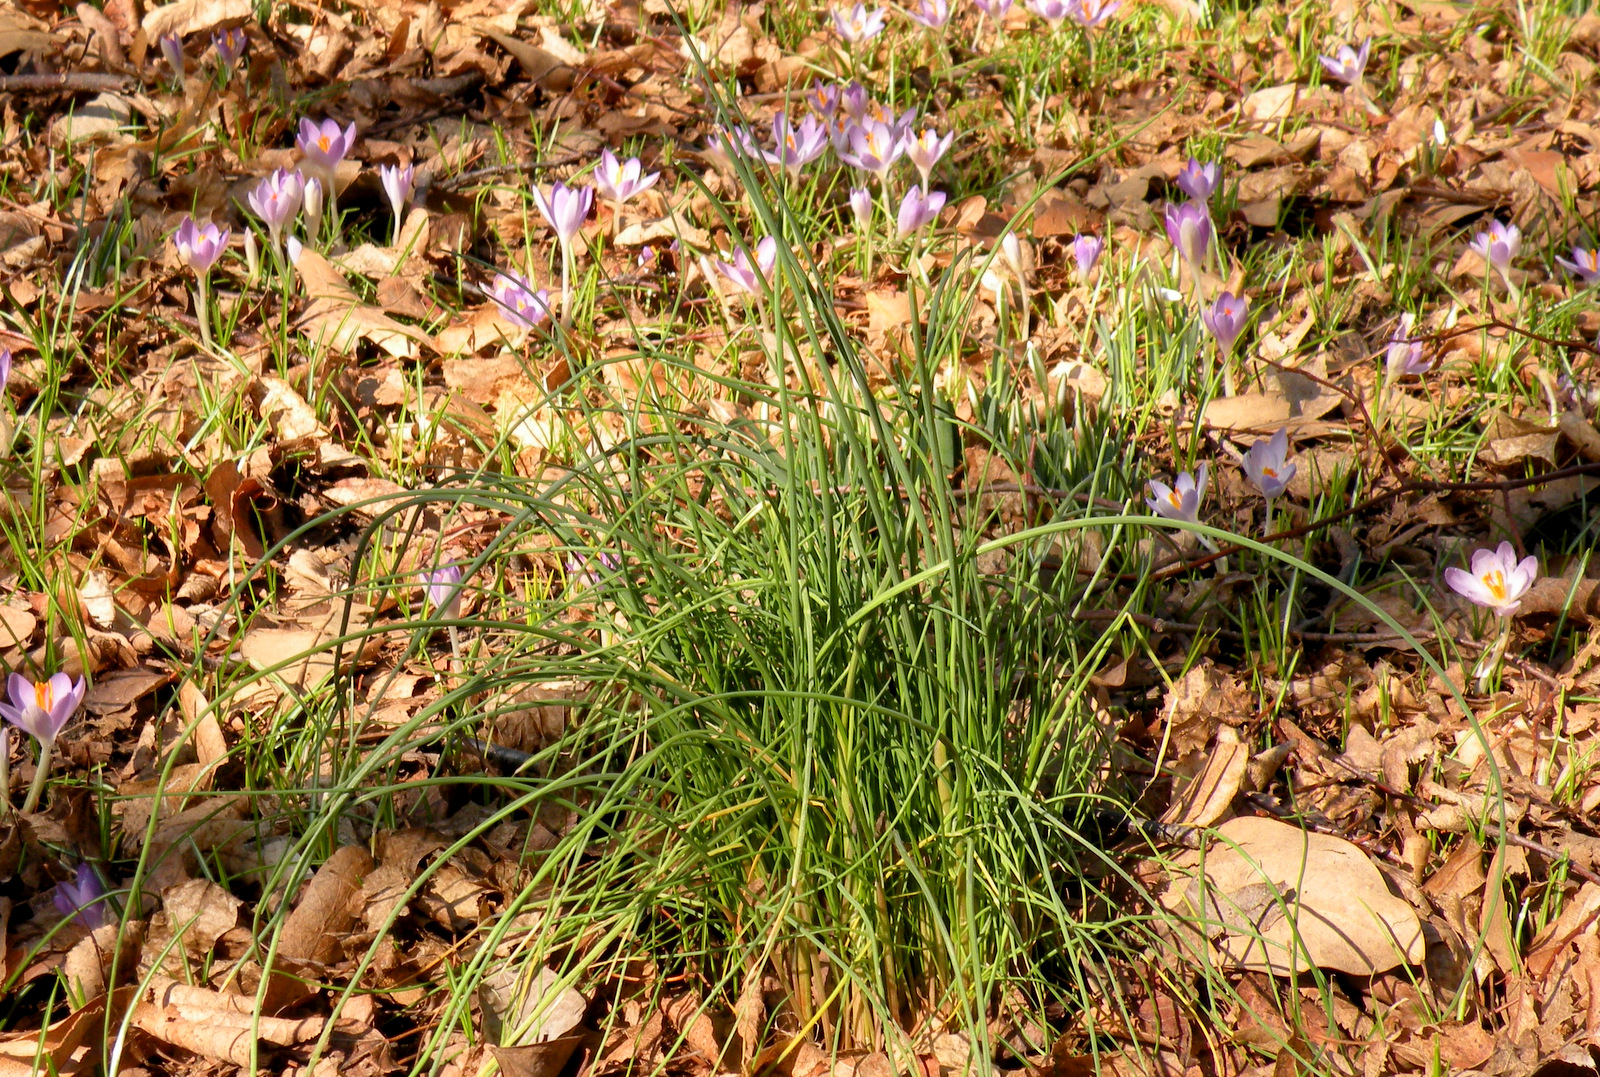 Those crocus plants surrounding the wild chive have white bulbs and green shoots too - but they're not edible. (Photo by Marta Hanson)